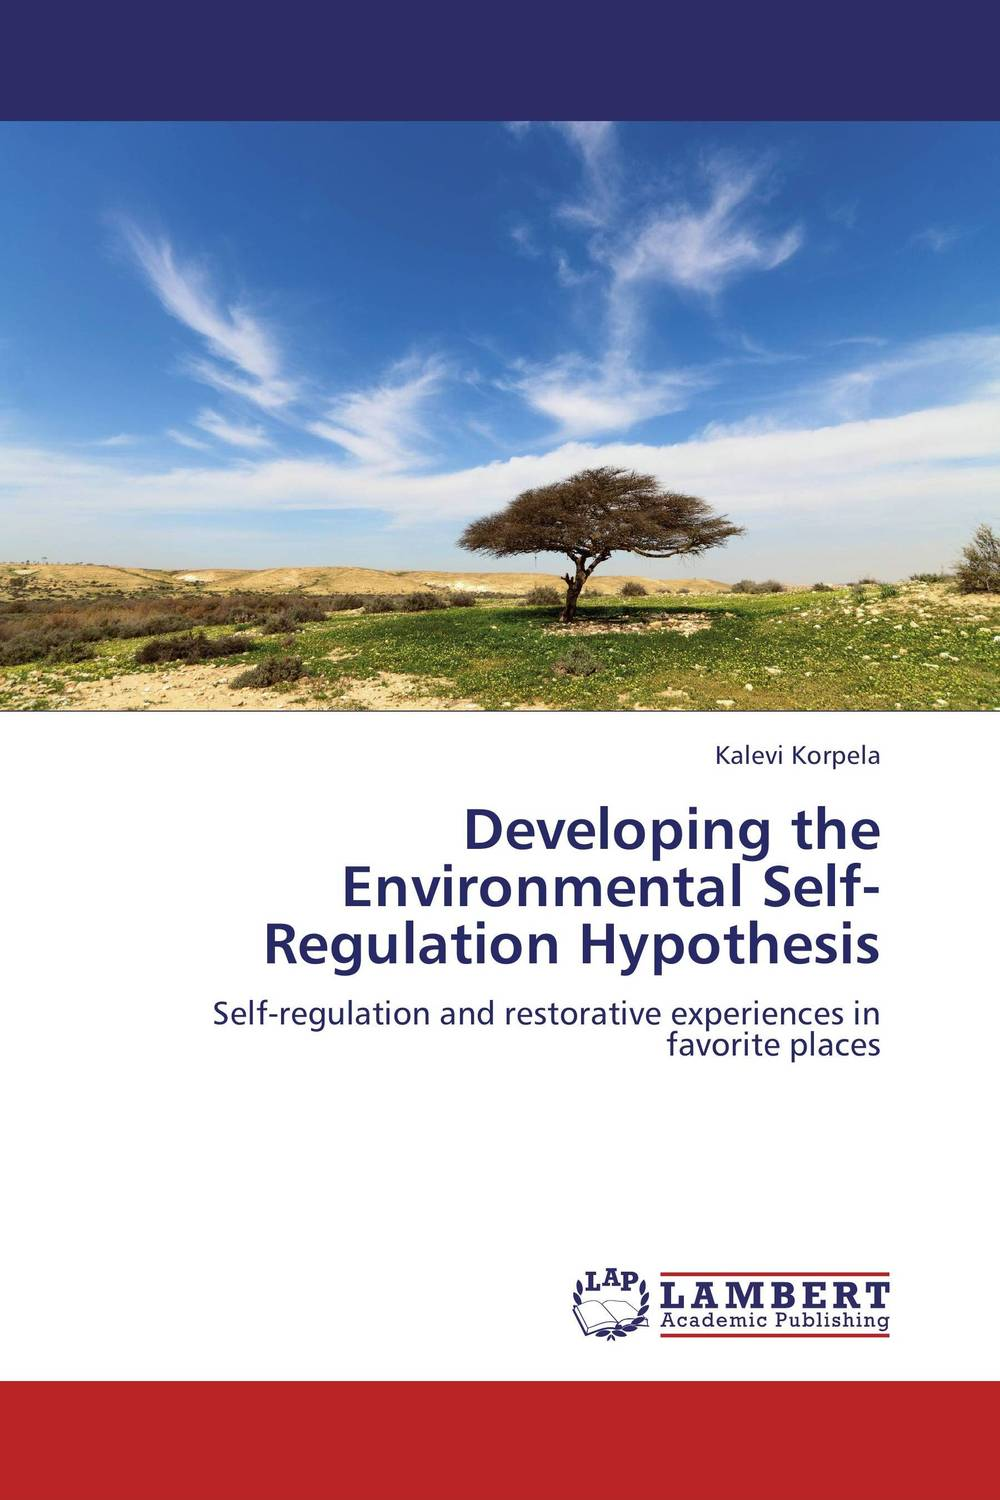 Developing the Environmental Self-Regulation Hypothesis humanizing globalization practice of multi stakeholder regulation